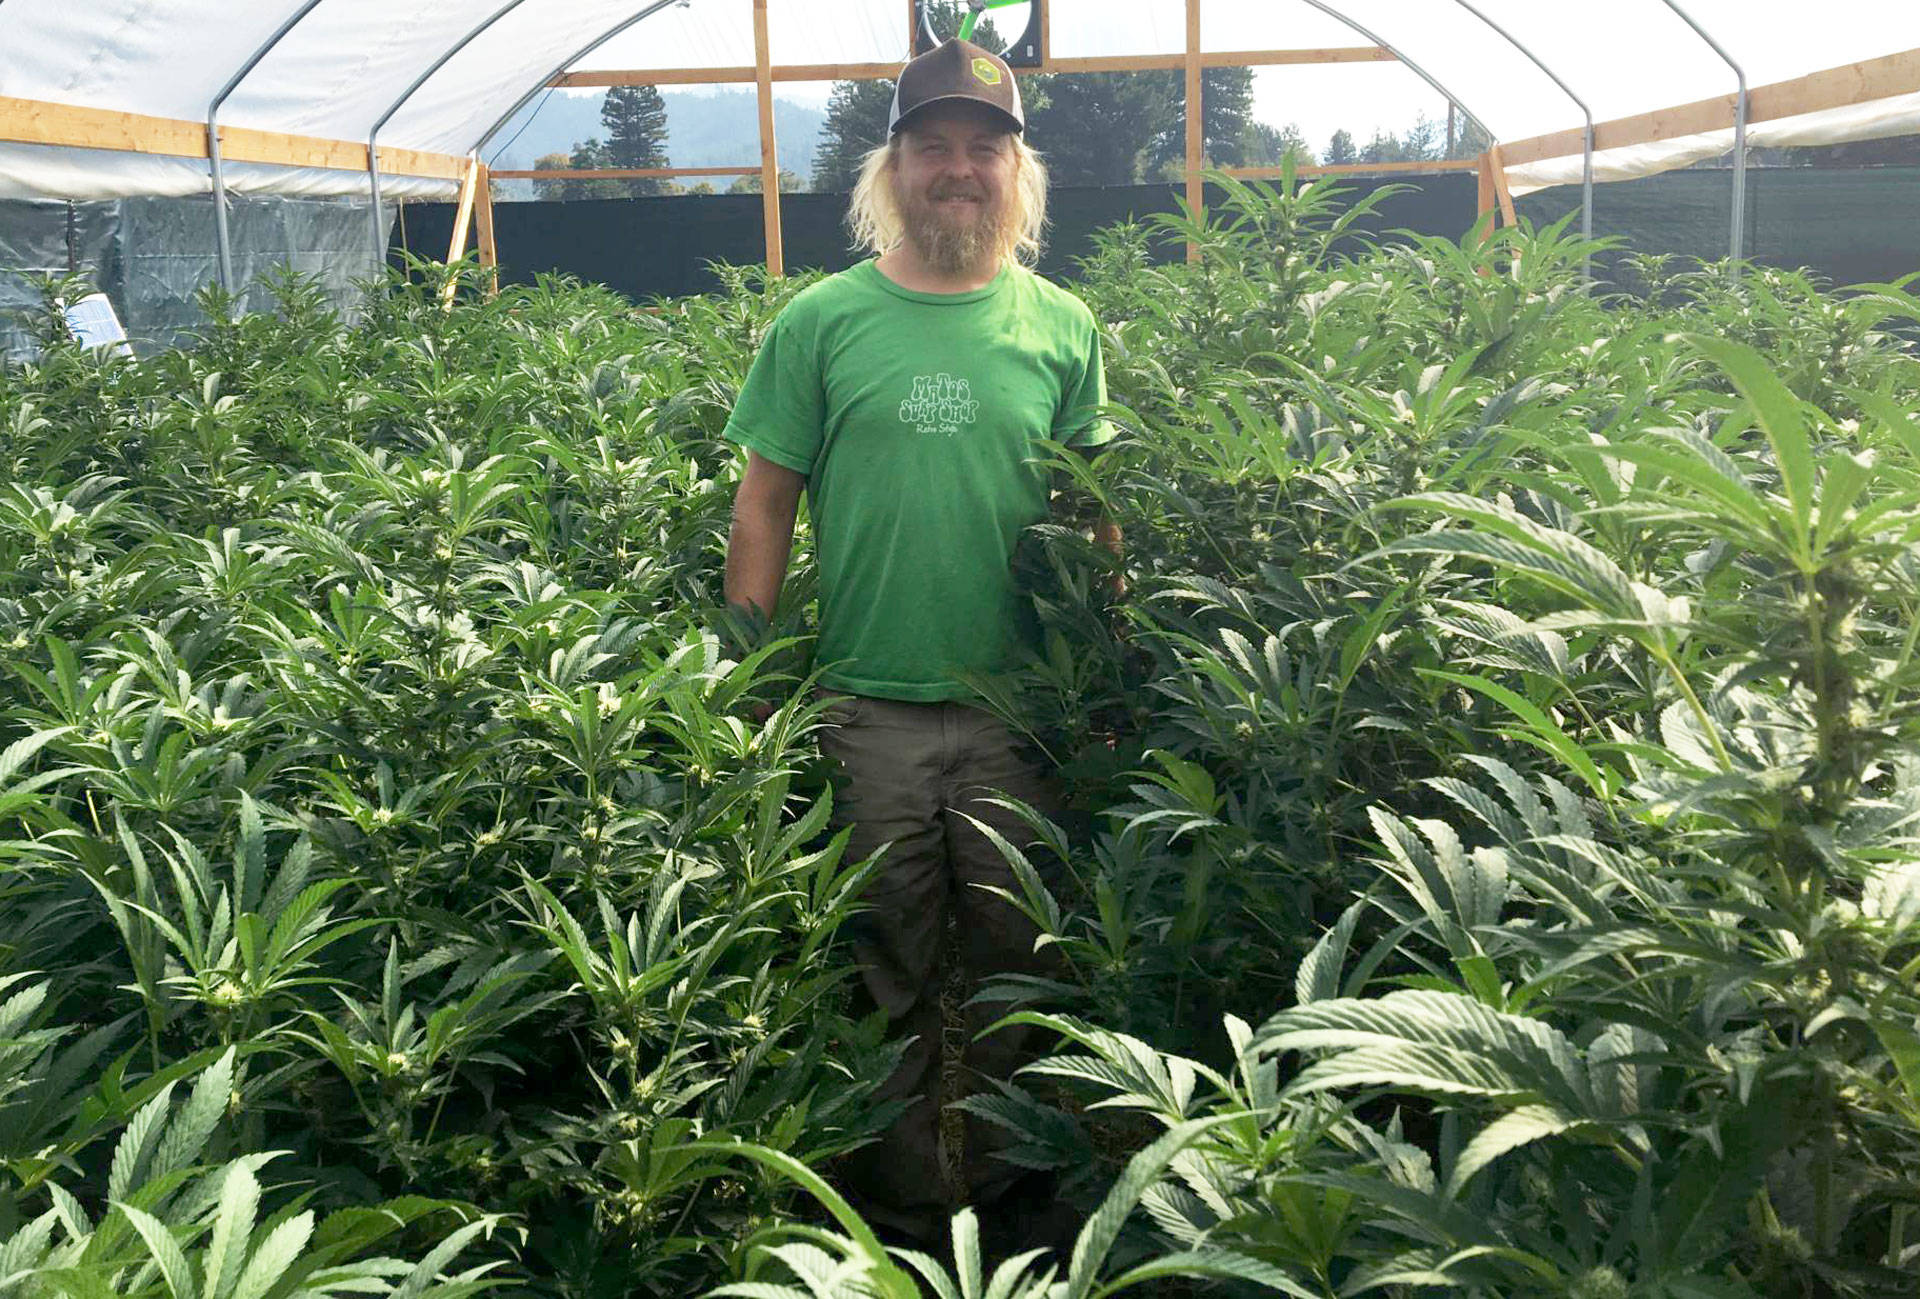 Small marijuana growers like Noah Beck in Humboldt County hope 'connoisseur cannabis' will help them compete with larger corporate growers.  Sam Harnett/KQED